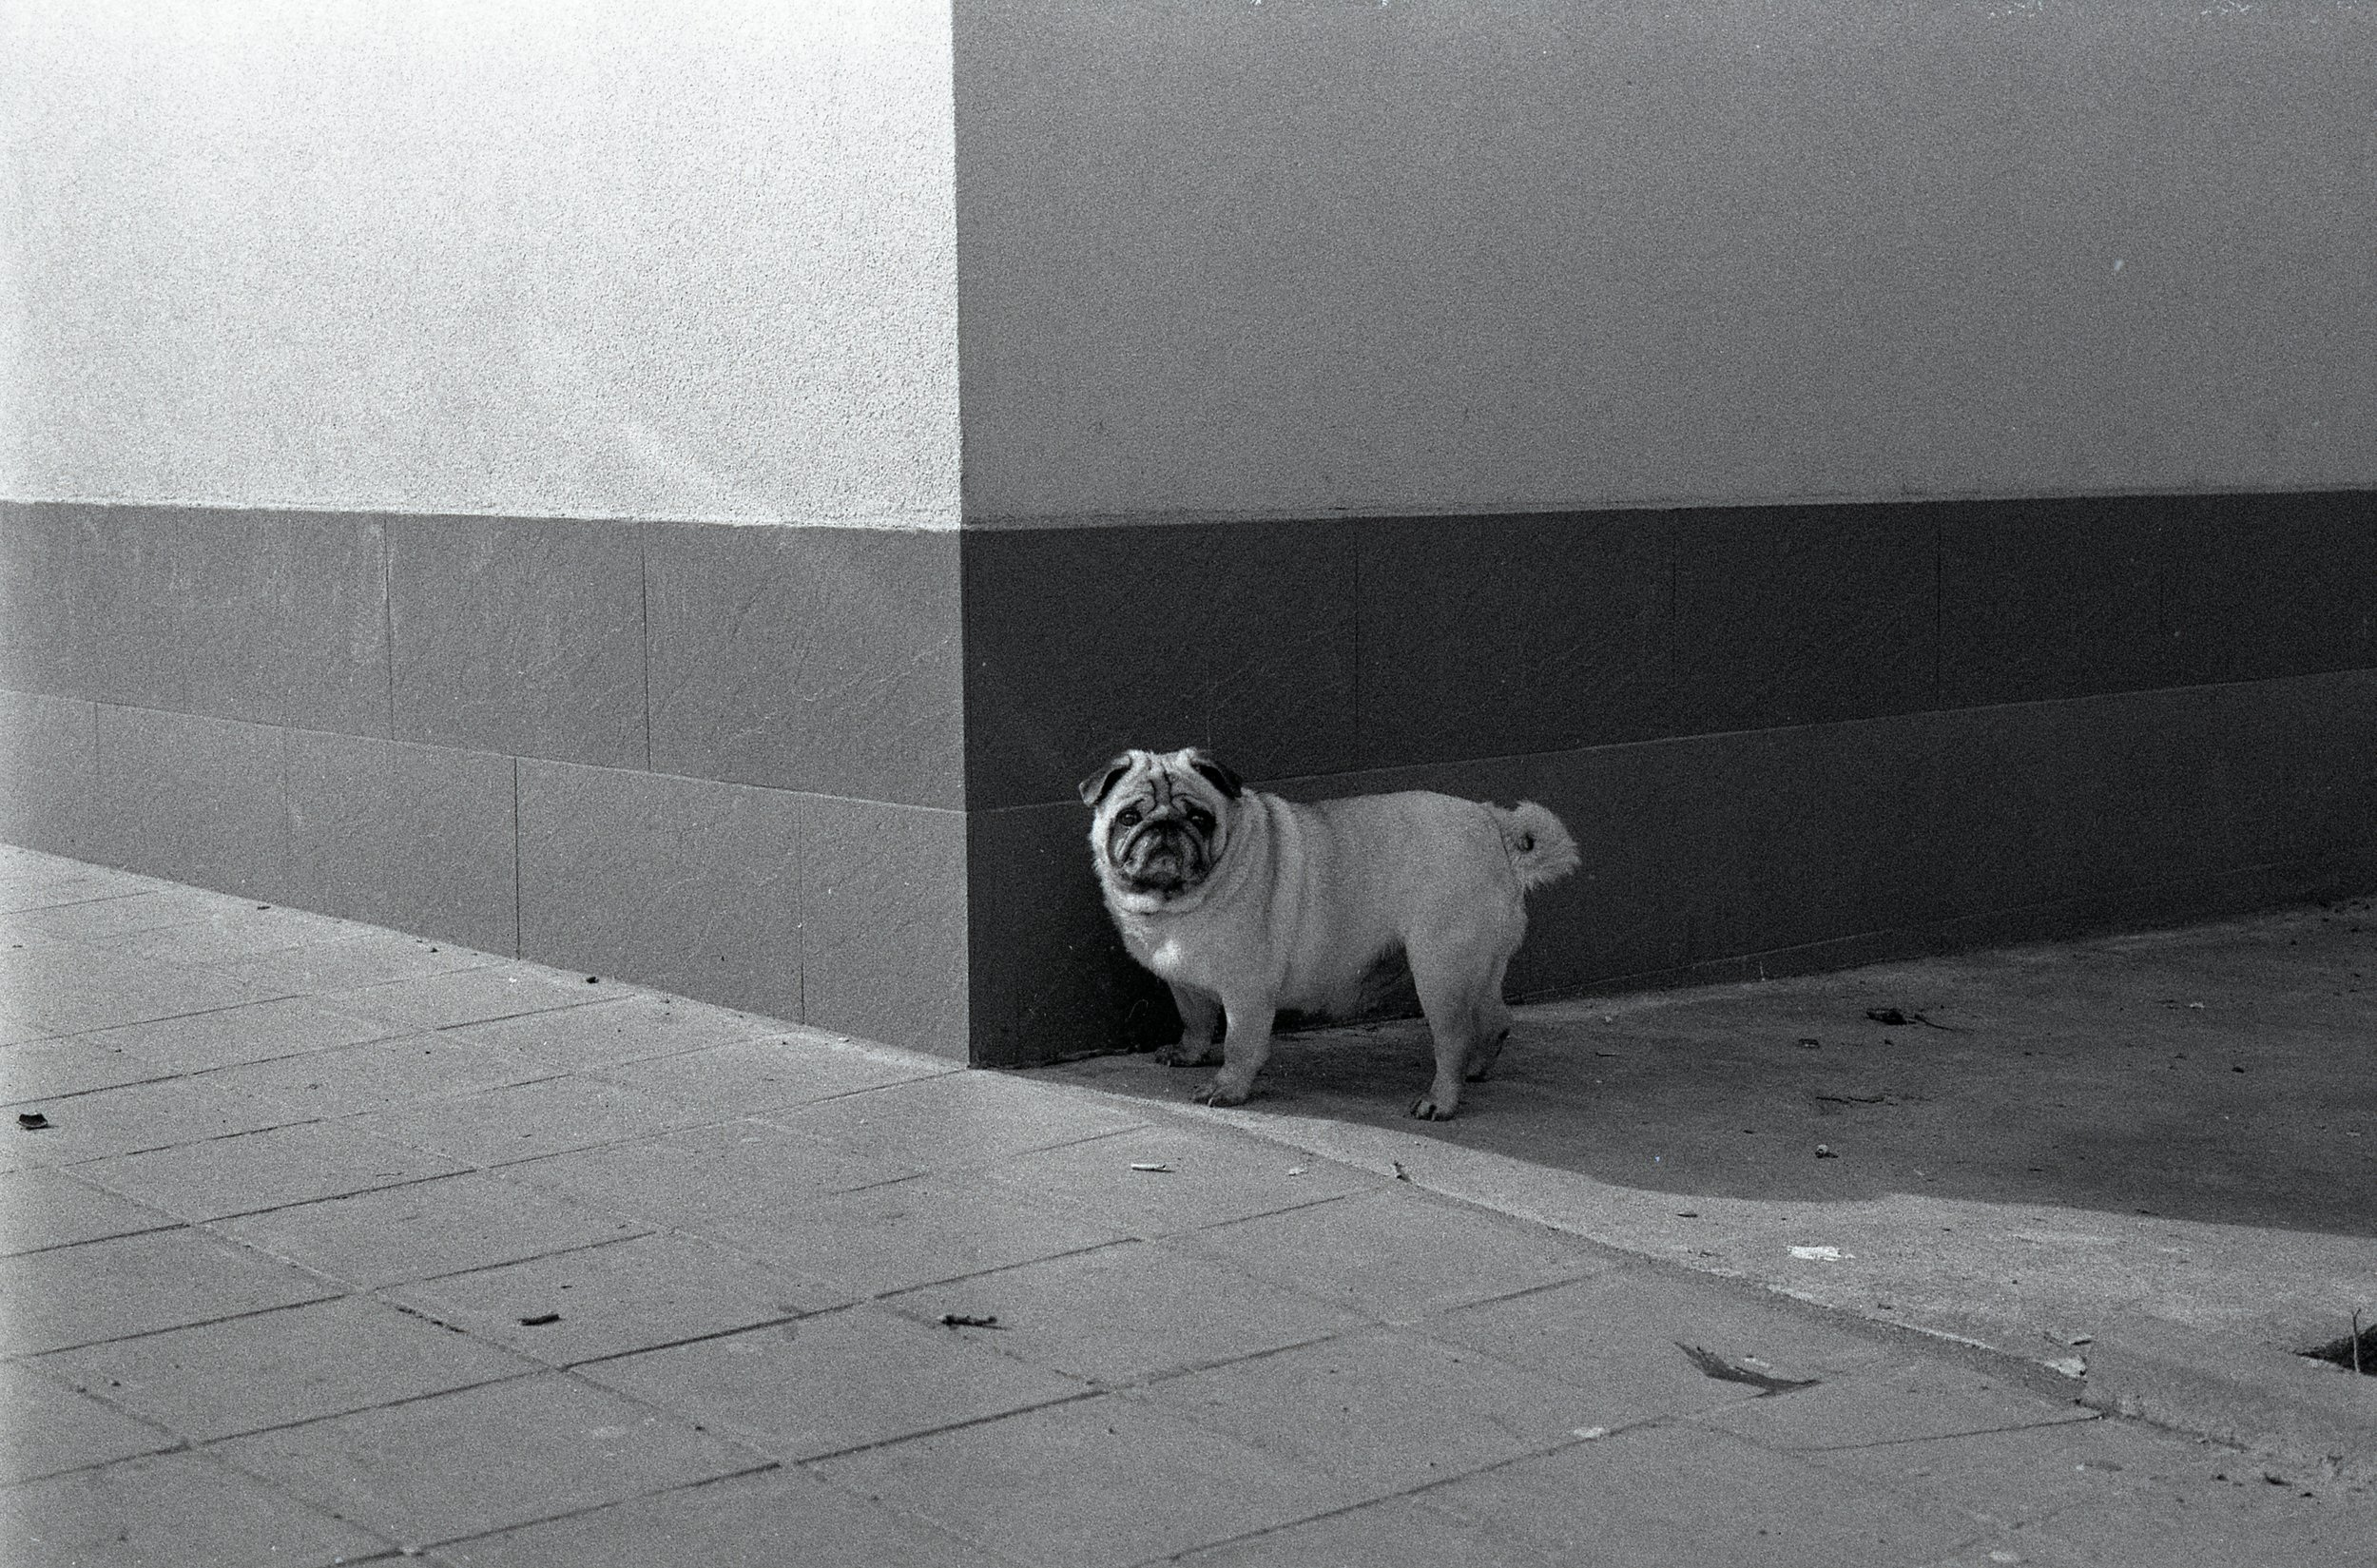 A lonely wee pug on the street in Pleven, Bulgaria (2018) - Ilford HP5